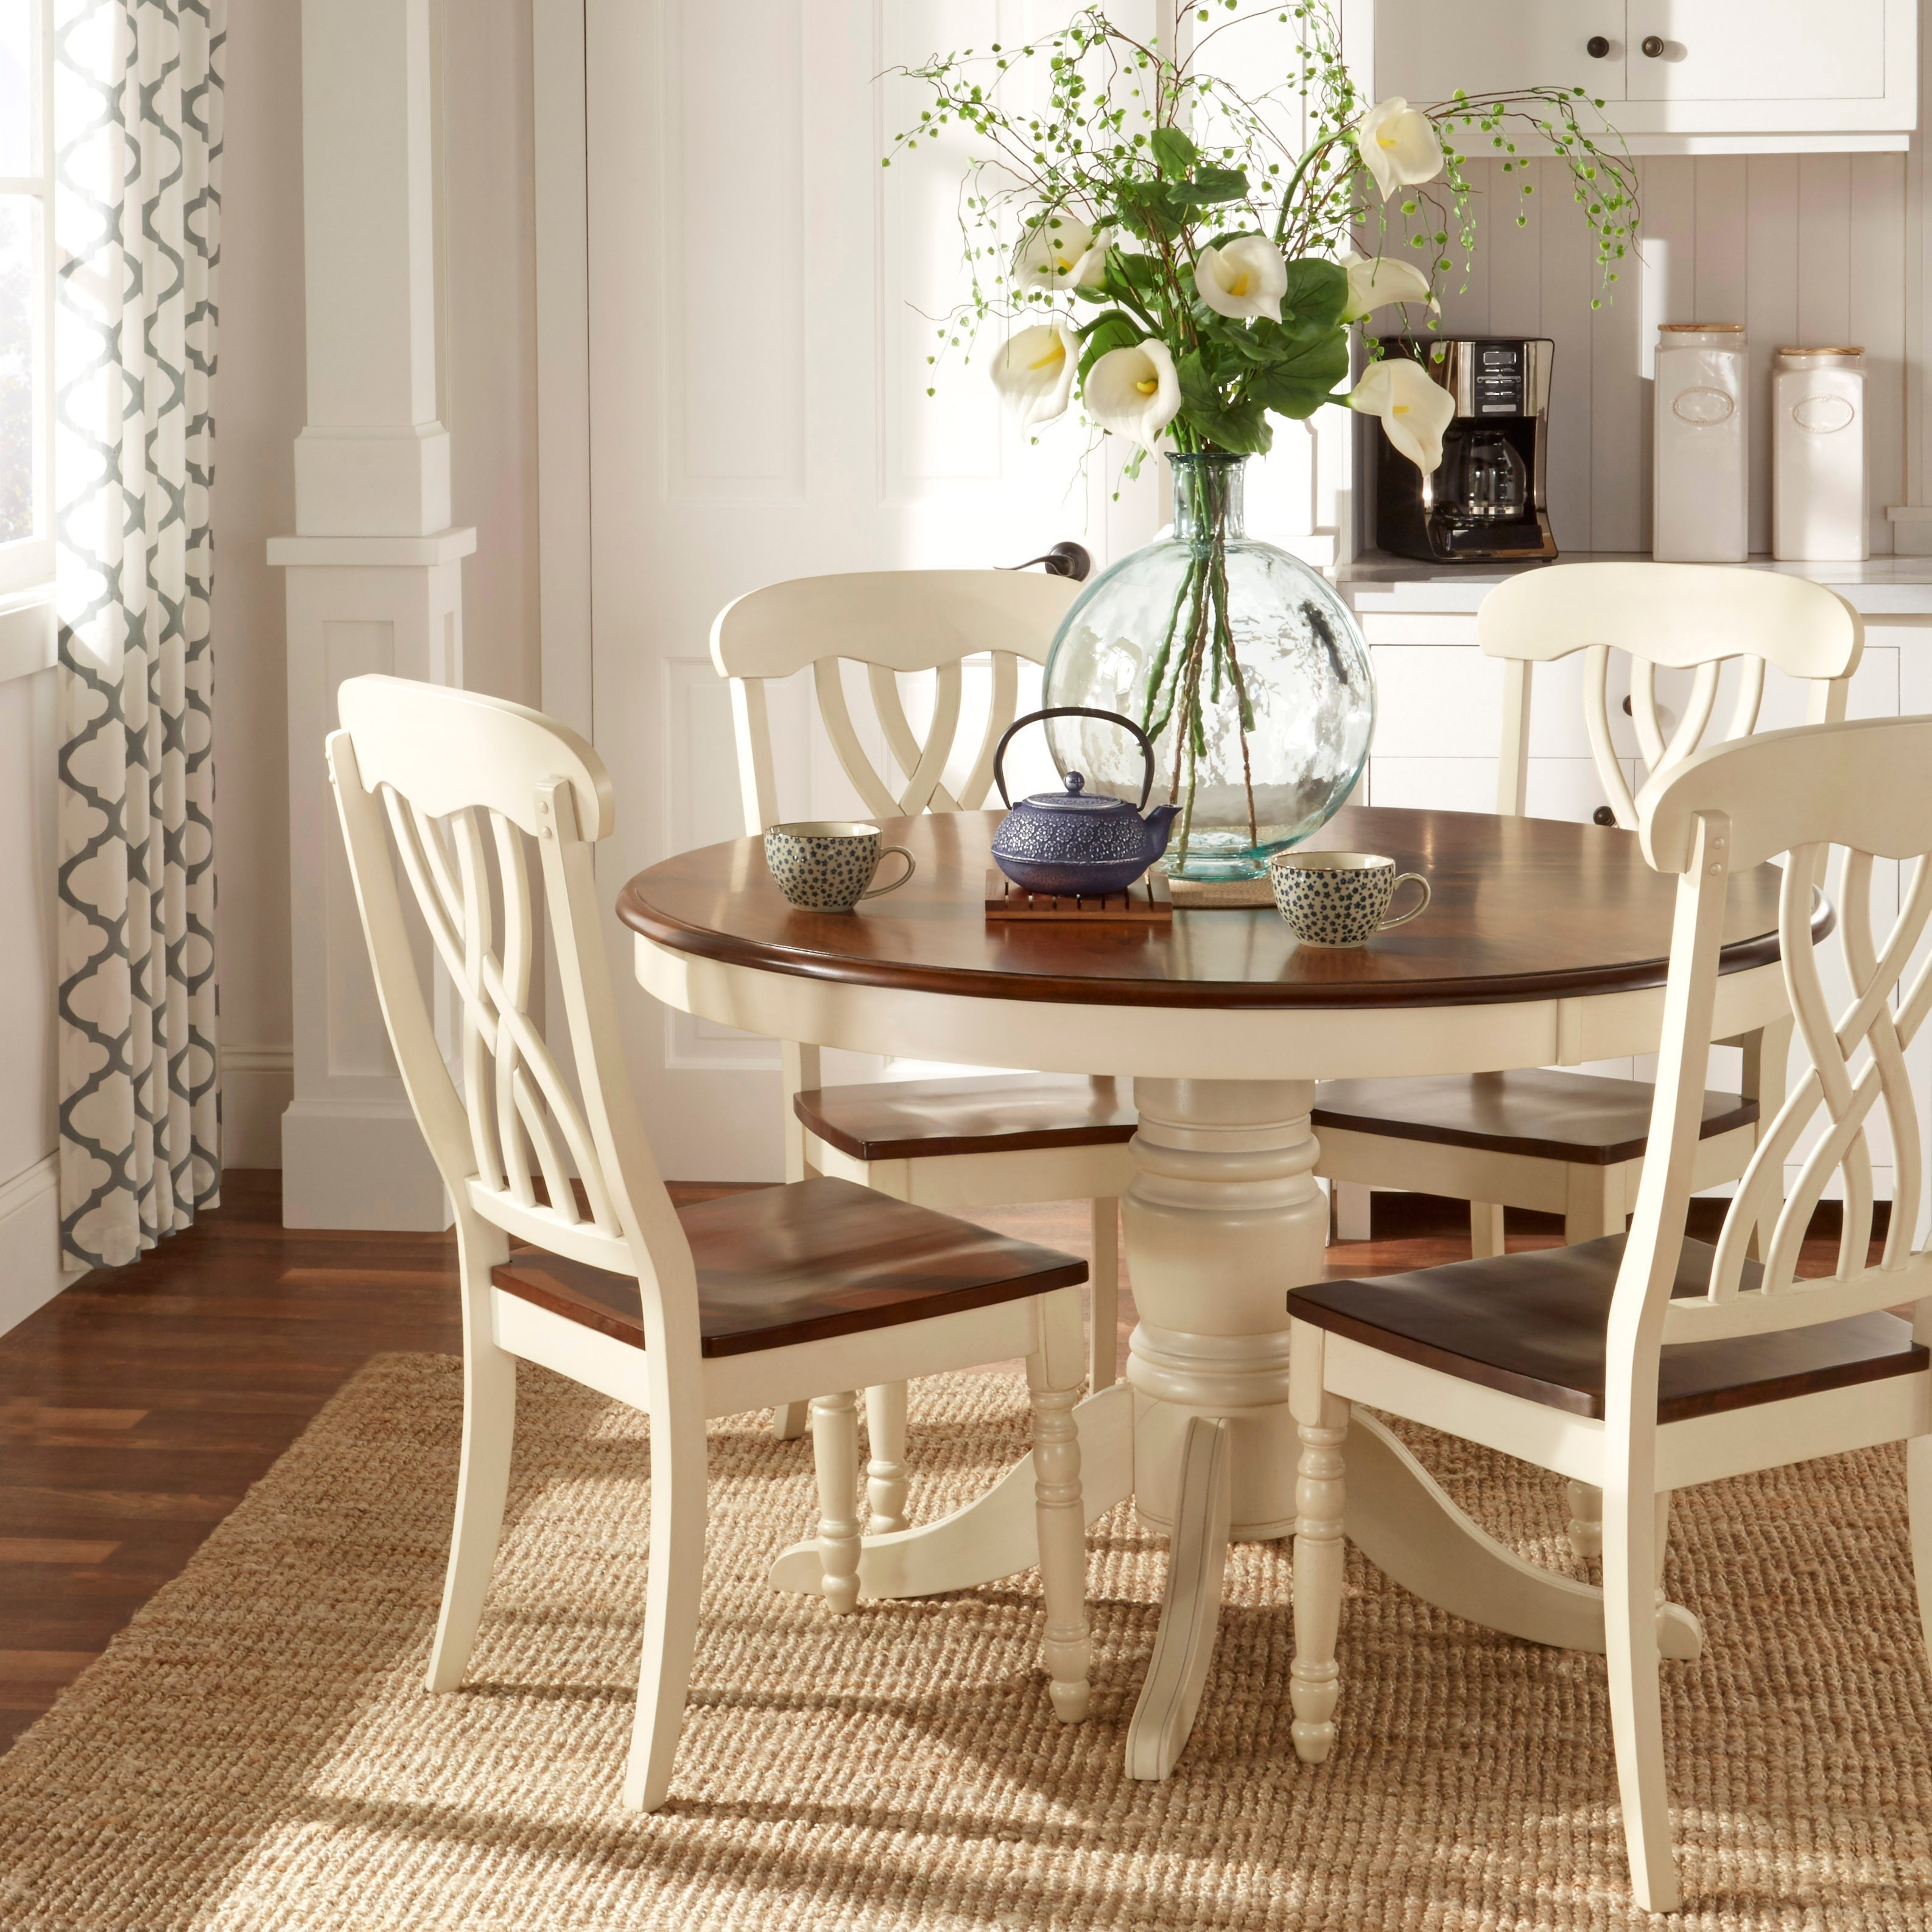 Mackenzie country style two tone dining chairs set of 2 by inspire mackenzie country style two tone dining chairs set of 2 by inspire q classic free shipping today overstock 12253663 dzzzfo